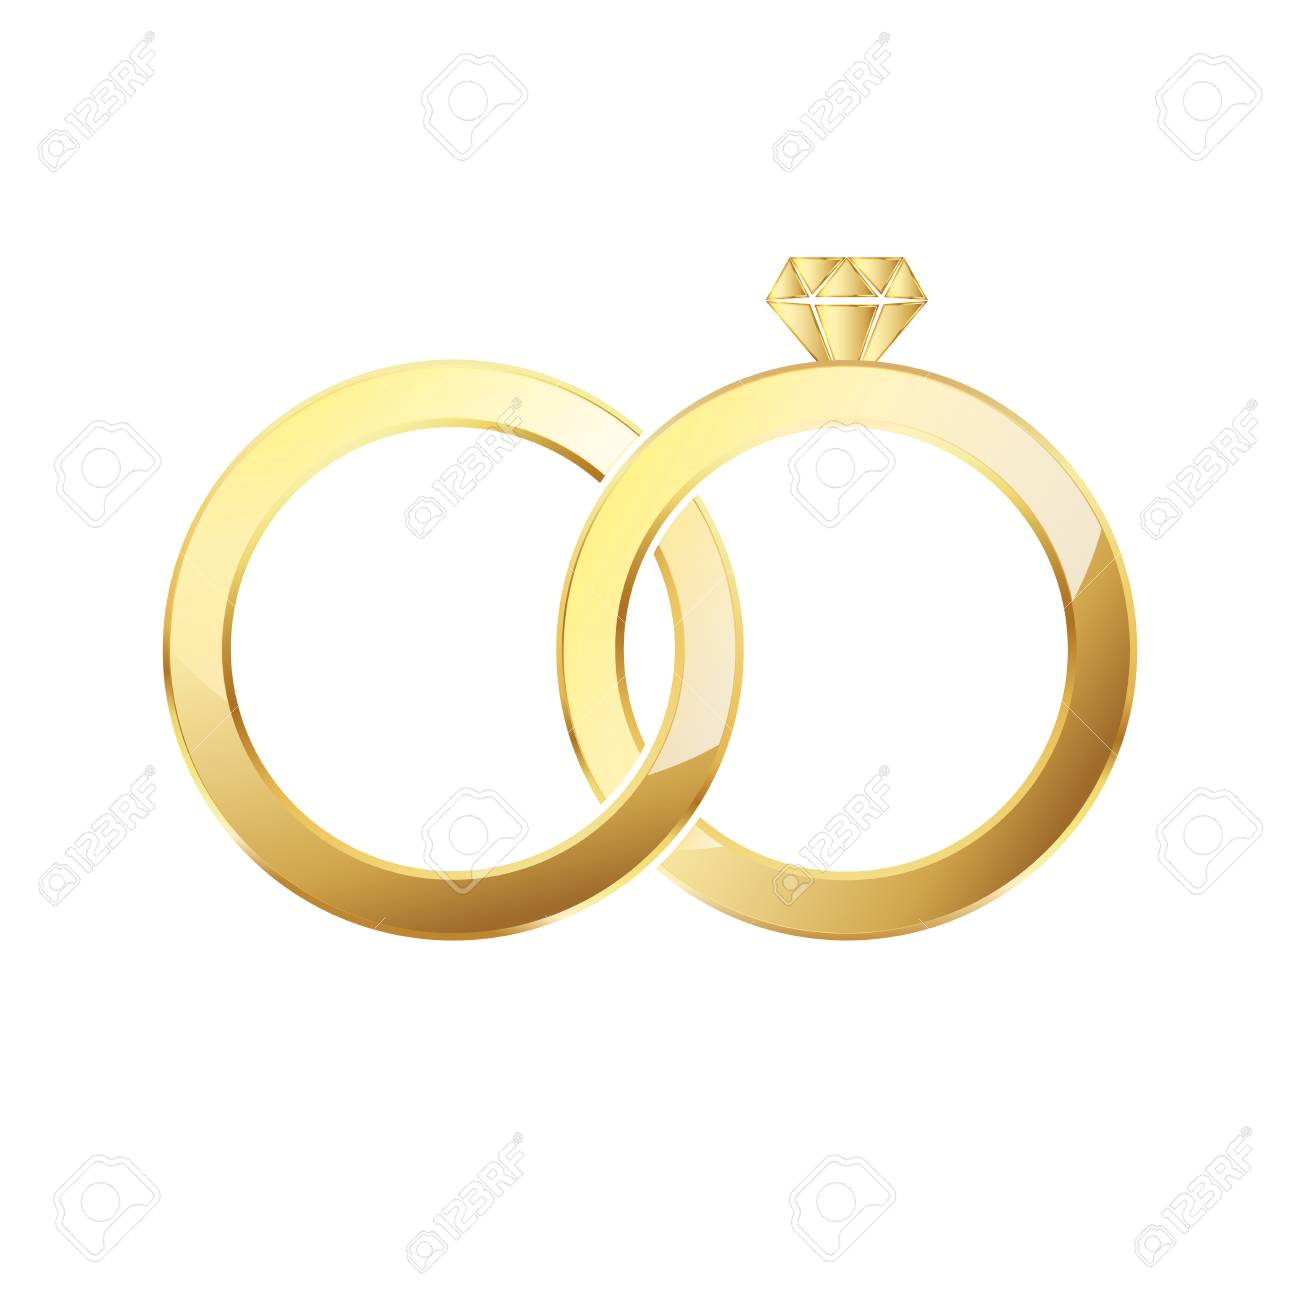 Golden Ring And Ring With Diamond Couple Of Gold Wedding Rings Royalty Free Cliparts Vectors And Stock Illustration Image 72714609